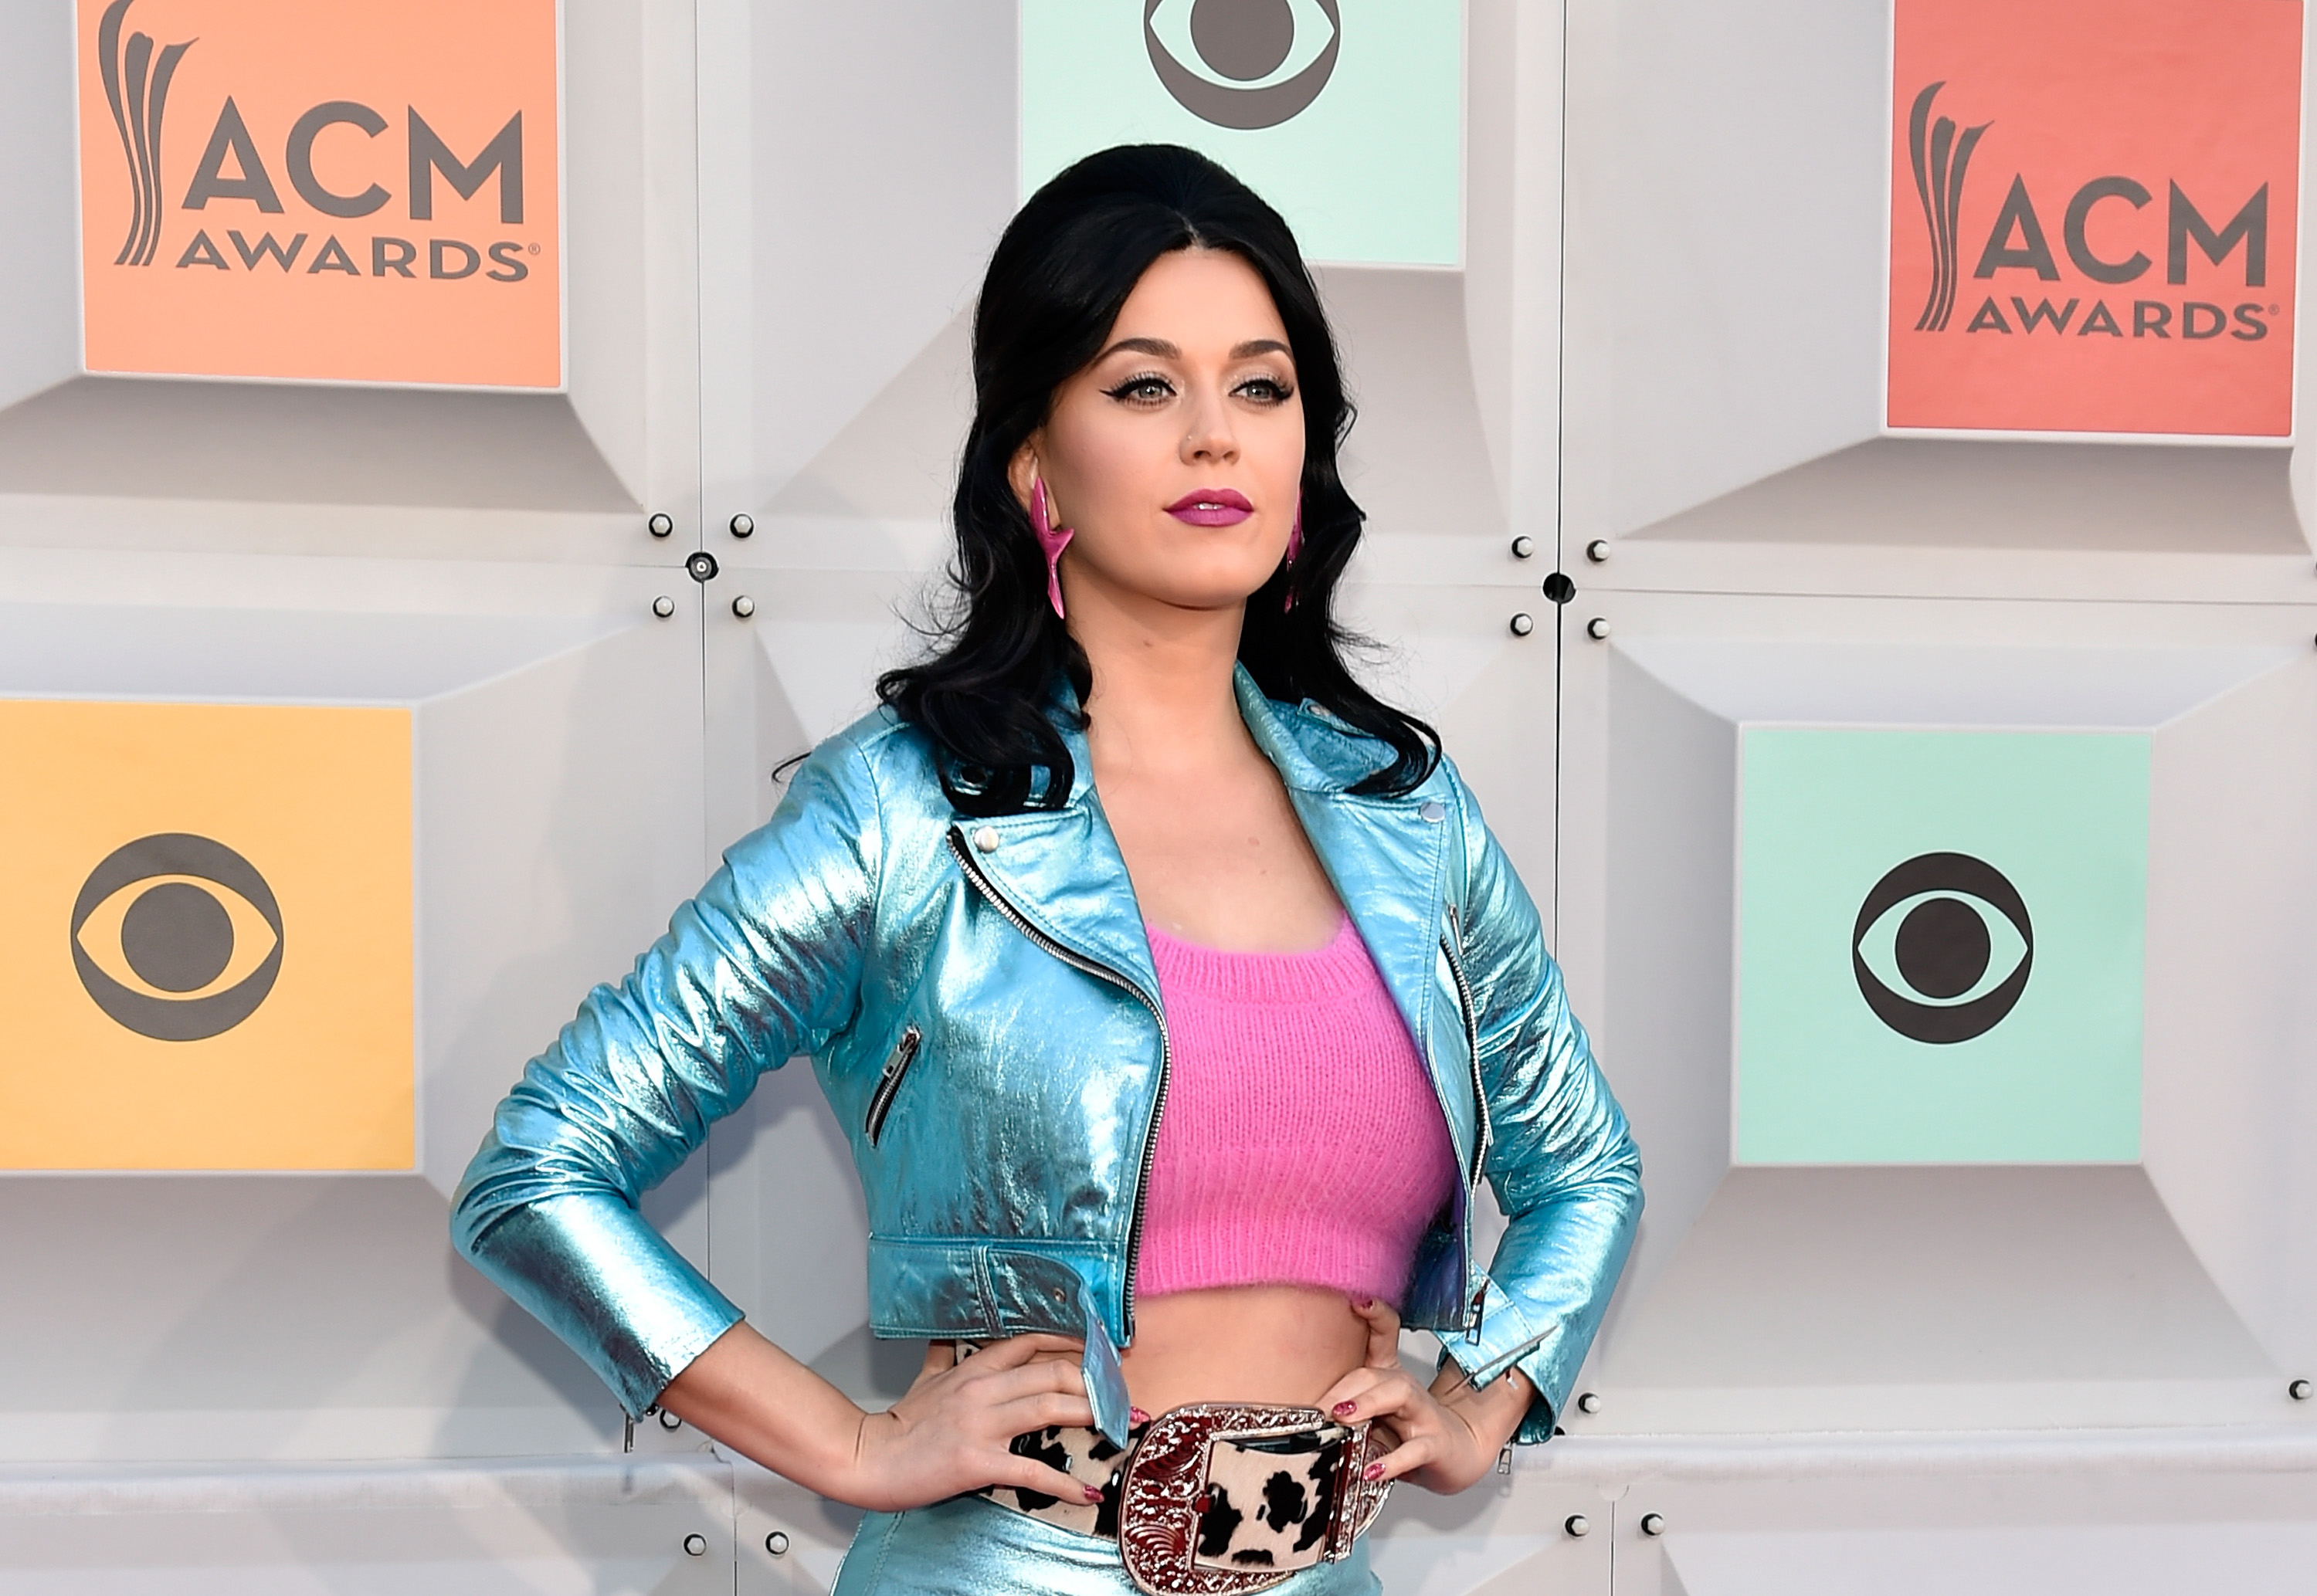 pics Katy Perry Bounces Her Breasts While Singing